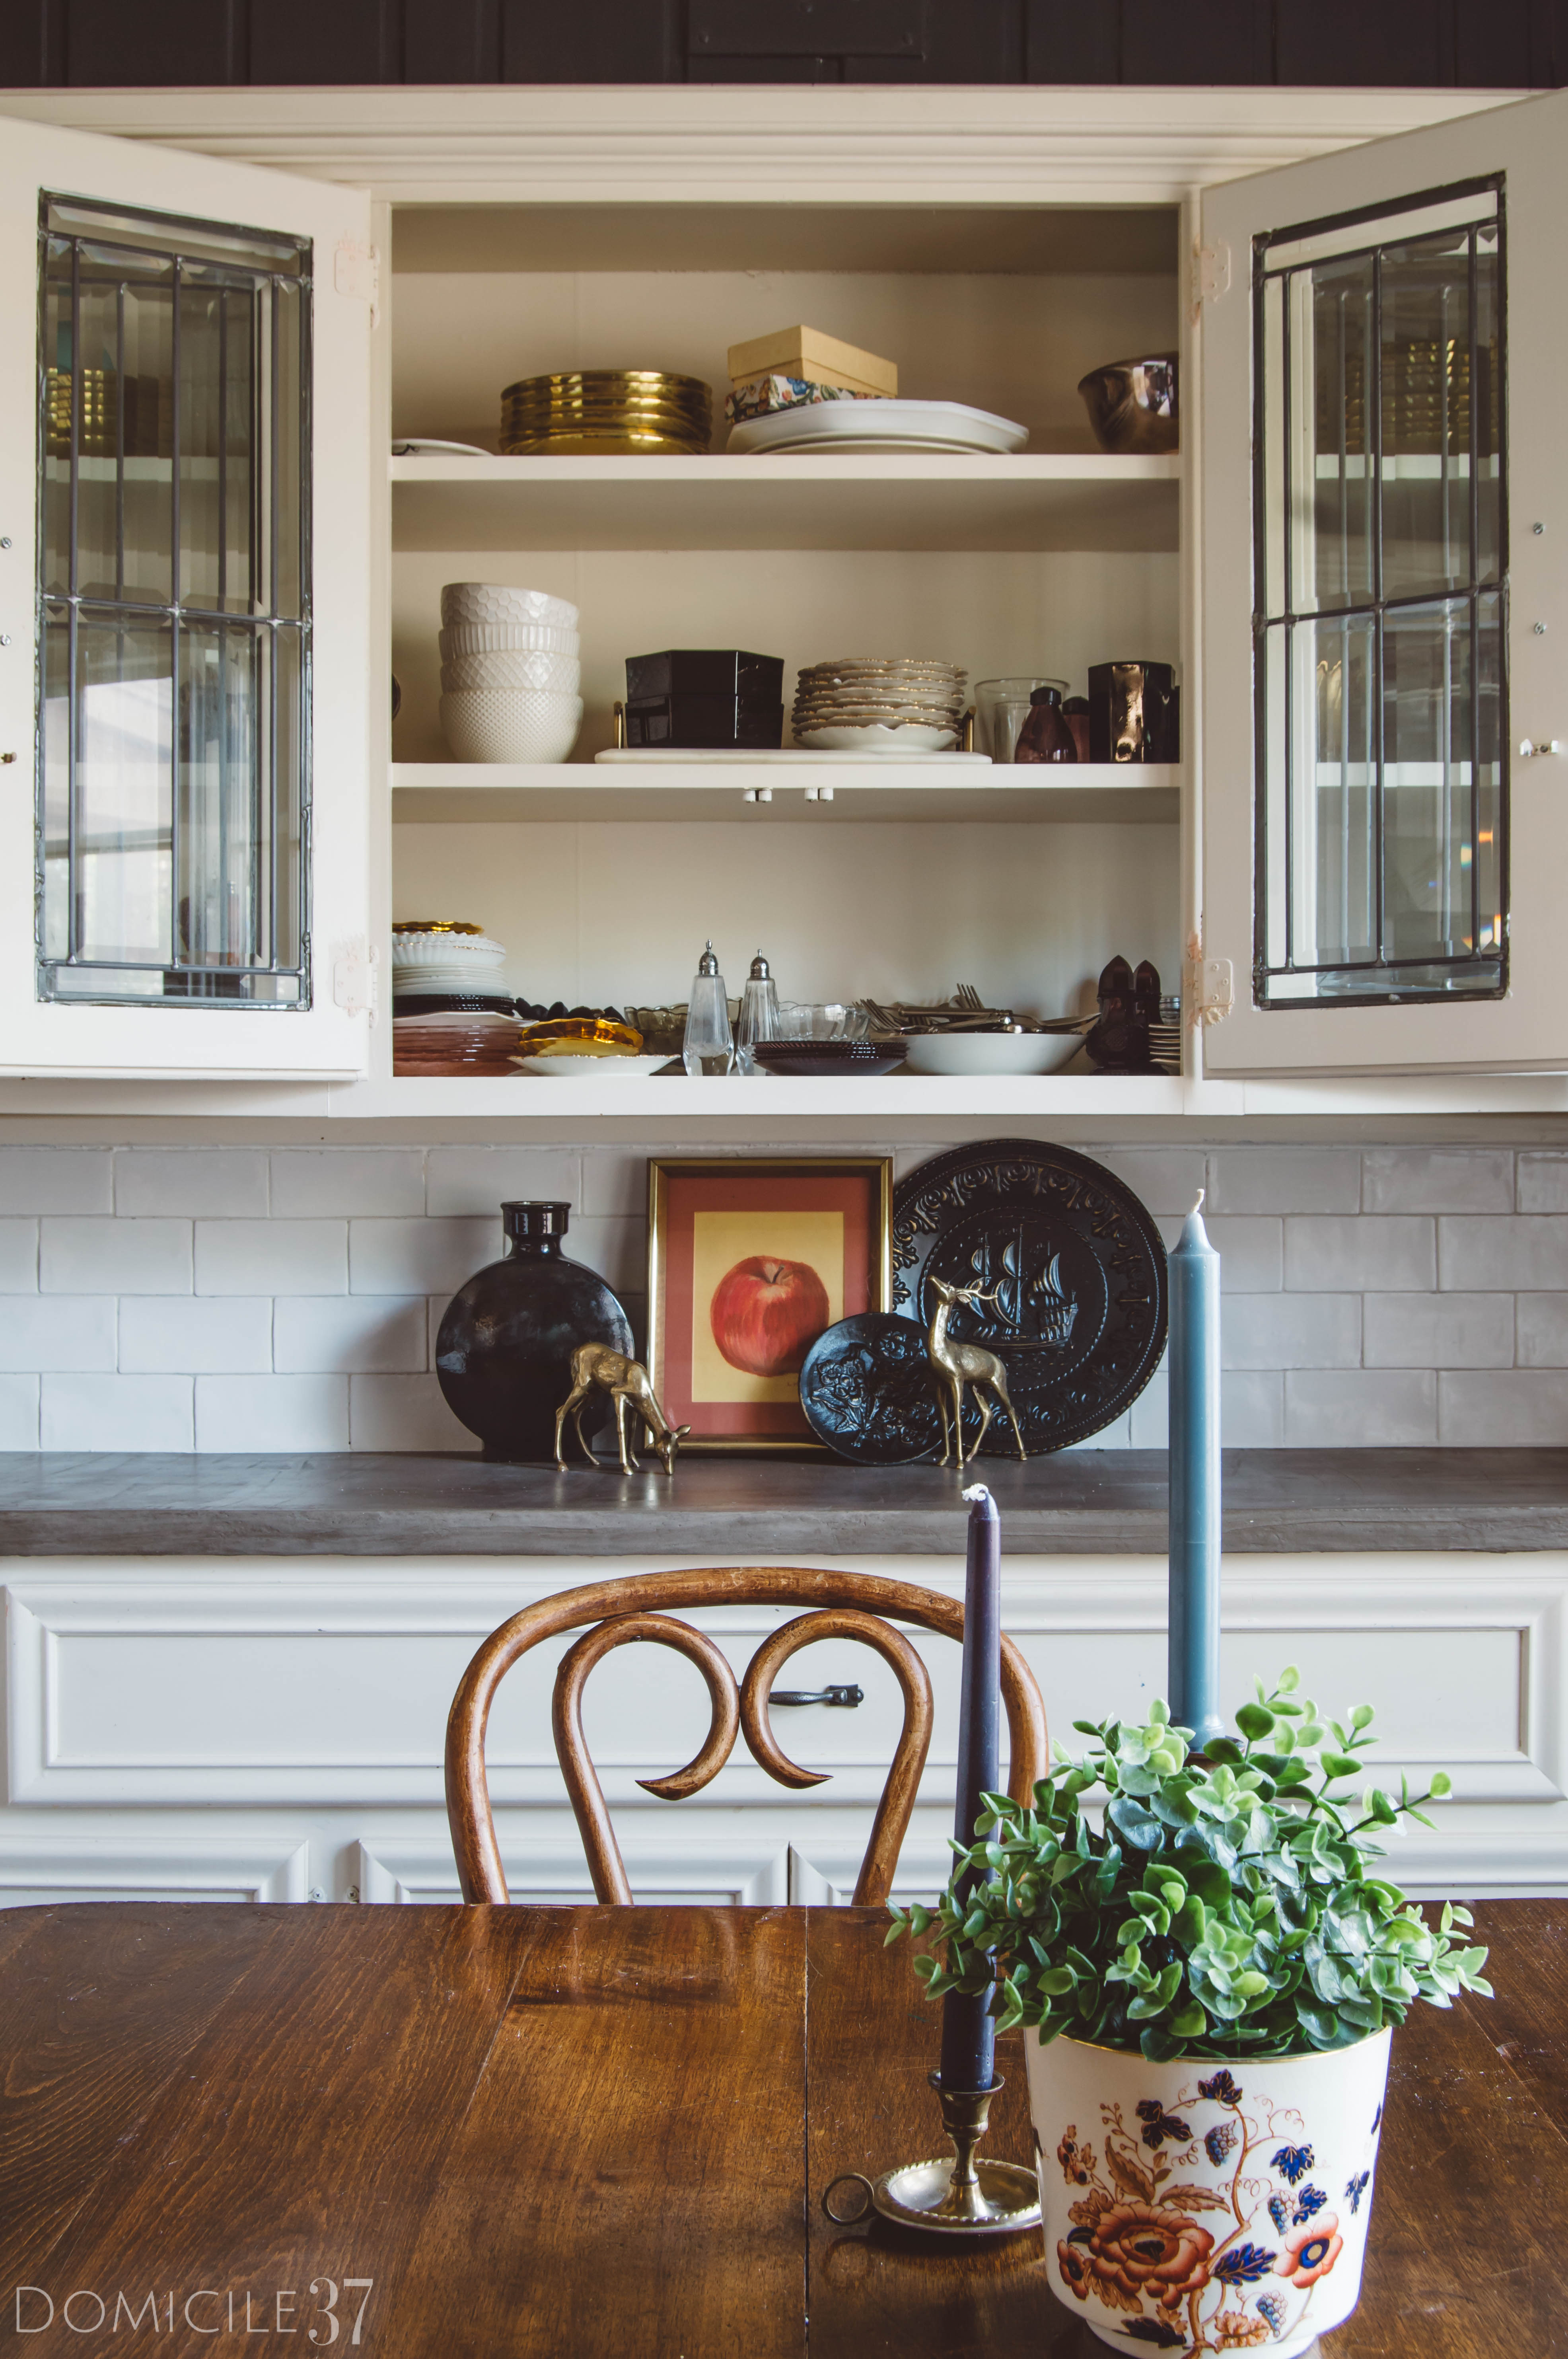 DIY Concrete Countertops, White Subway tile, Cream Cabinets, Vintage Eclectic Kitchen, Home with Soul, Soulful home, European Kitchen Inspiration